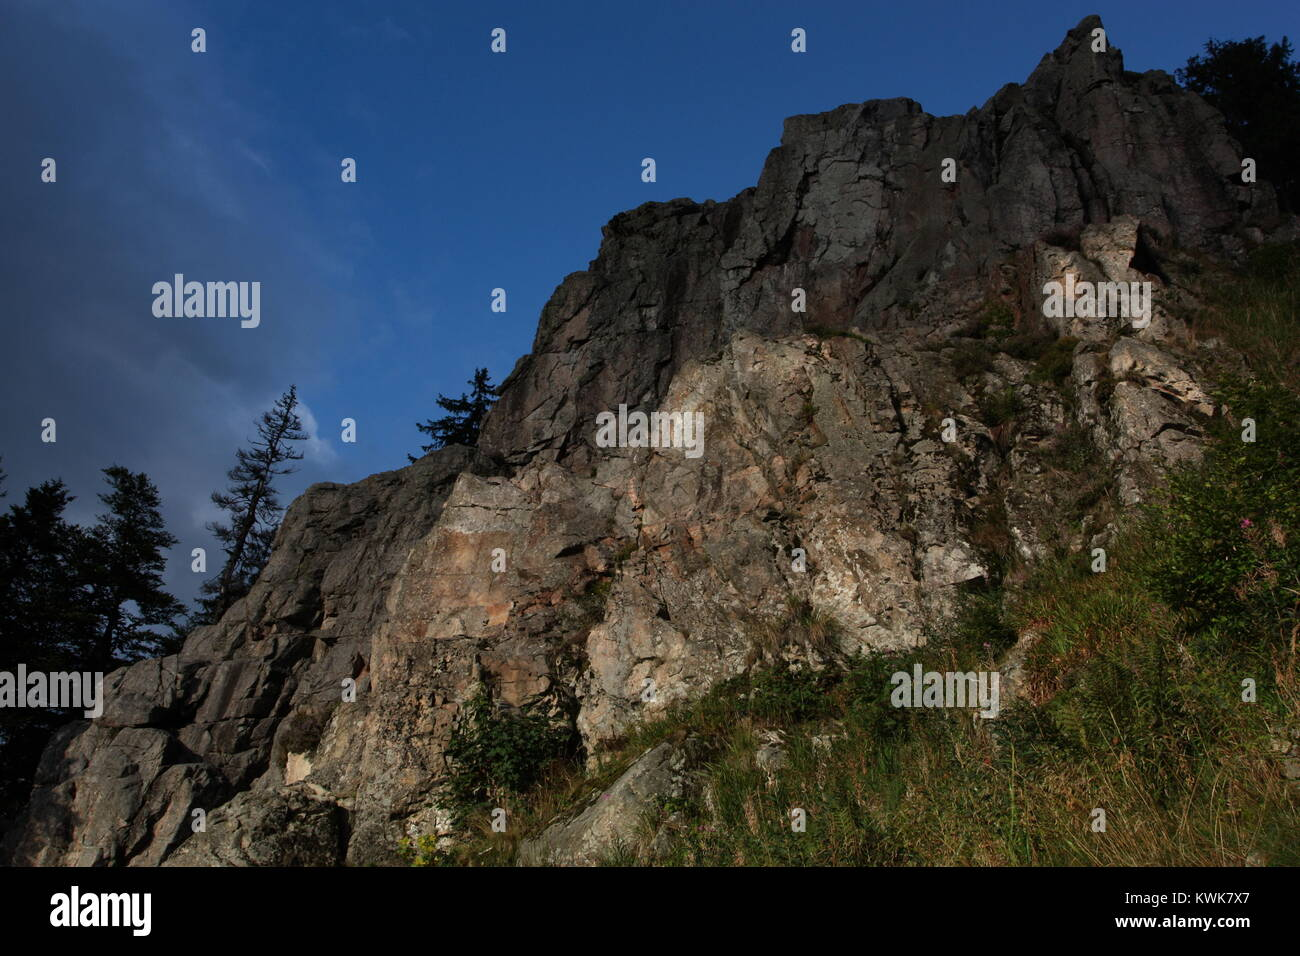 The Kandelfelsen viewed from below - Stock Image